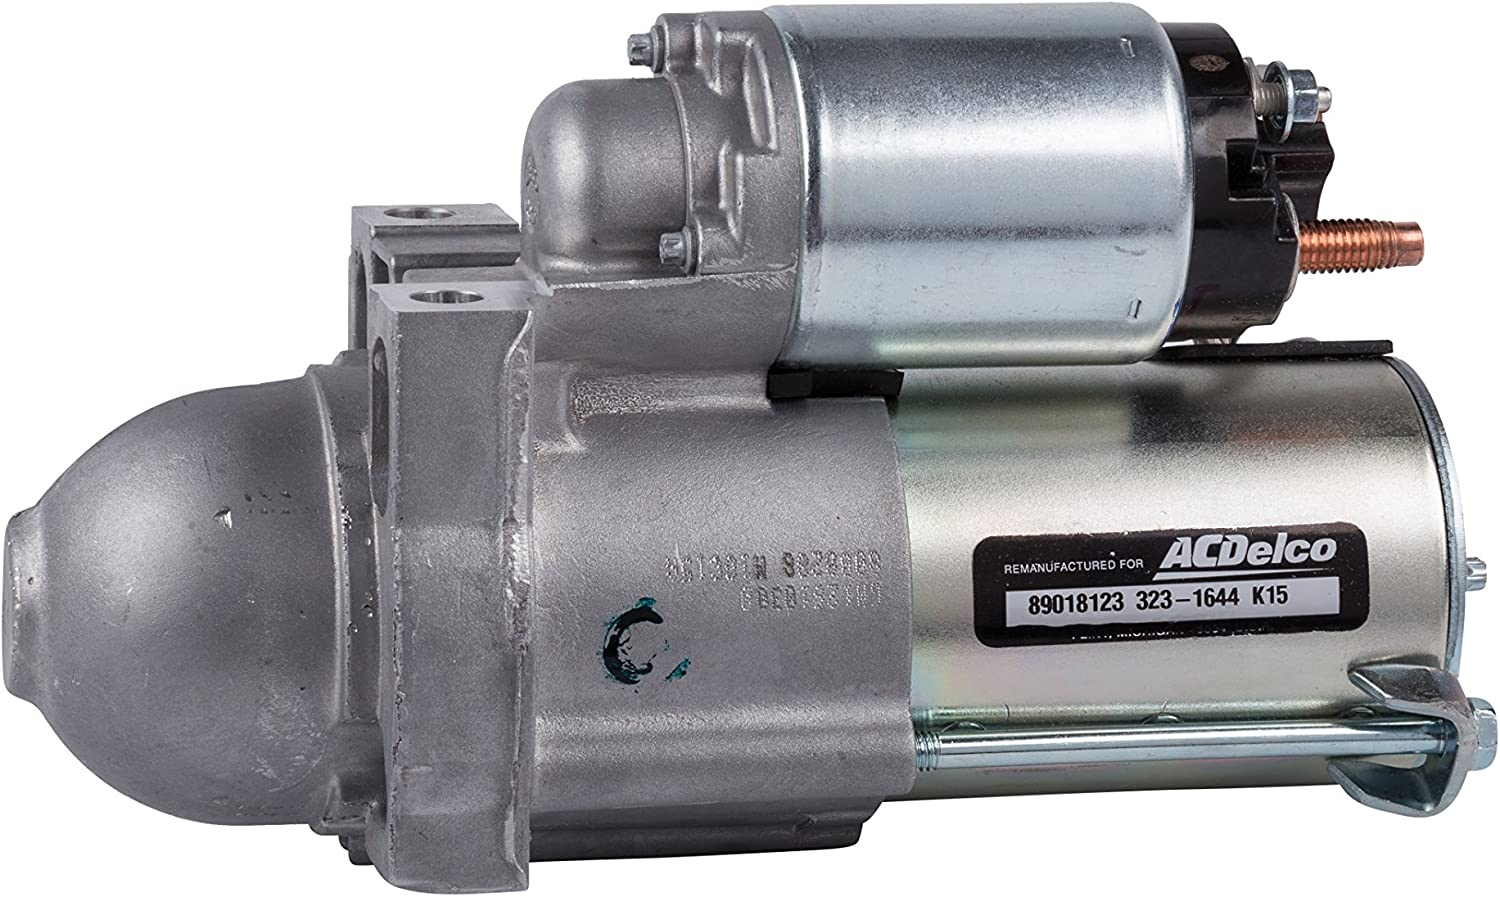 GM Genuine Parts Limited time cheap sale Jacksonville Mall Remanufactured Starter 323-1644